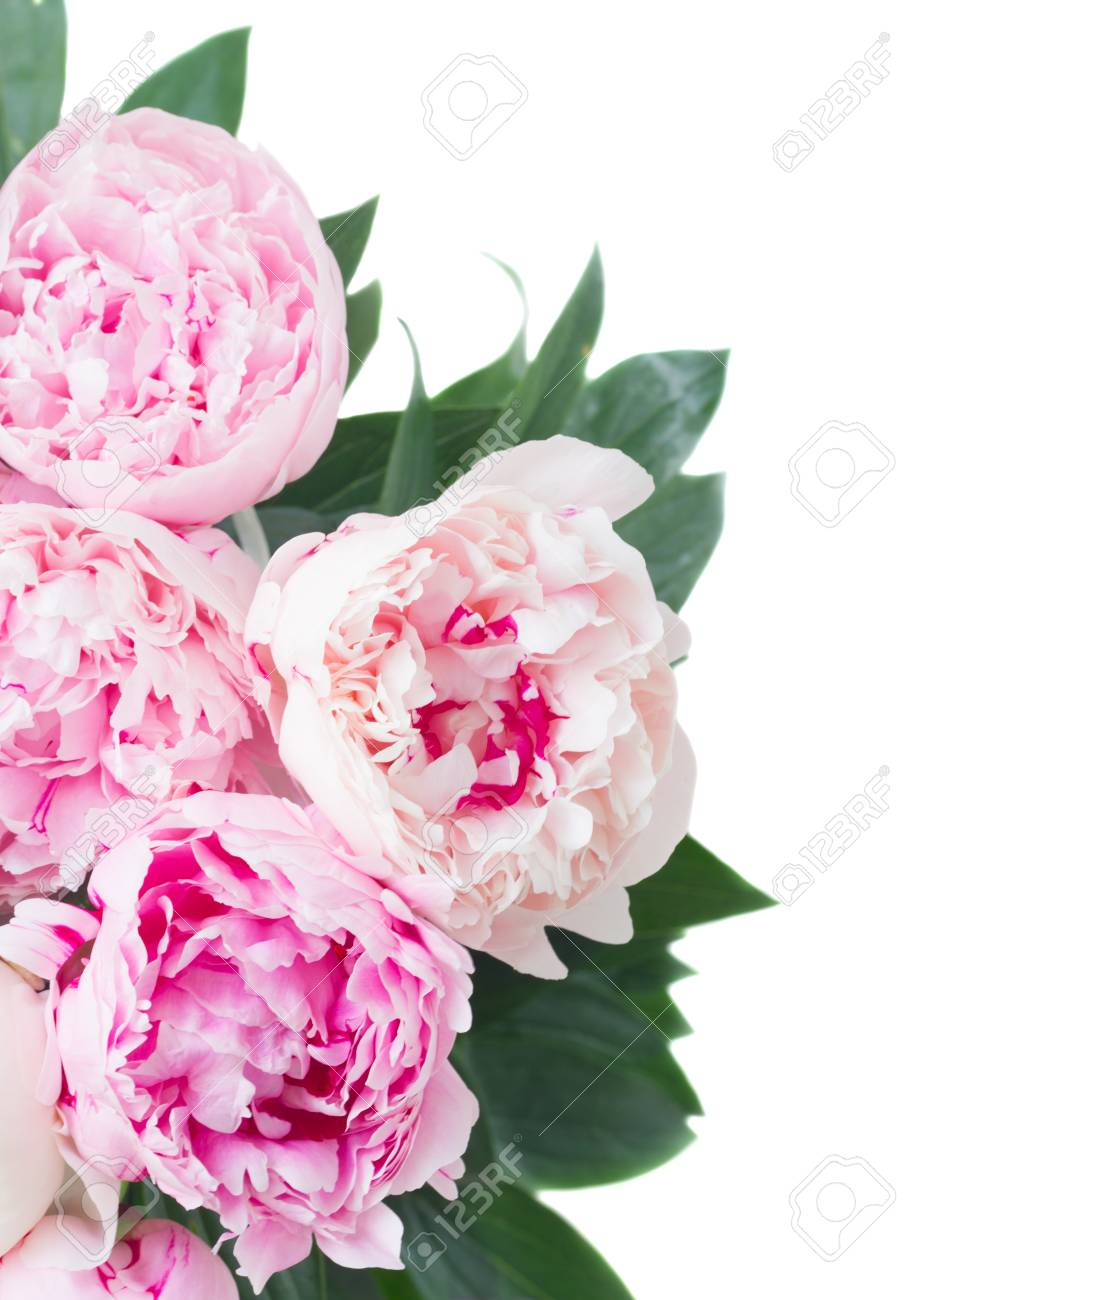 Fresh Peony Flowers With Leaves Border Colored In Shades Of Pink